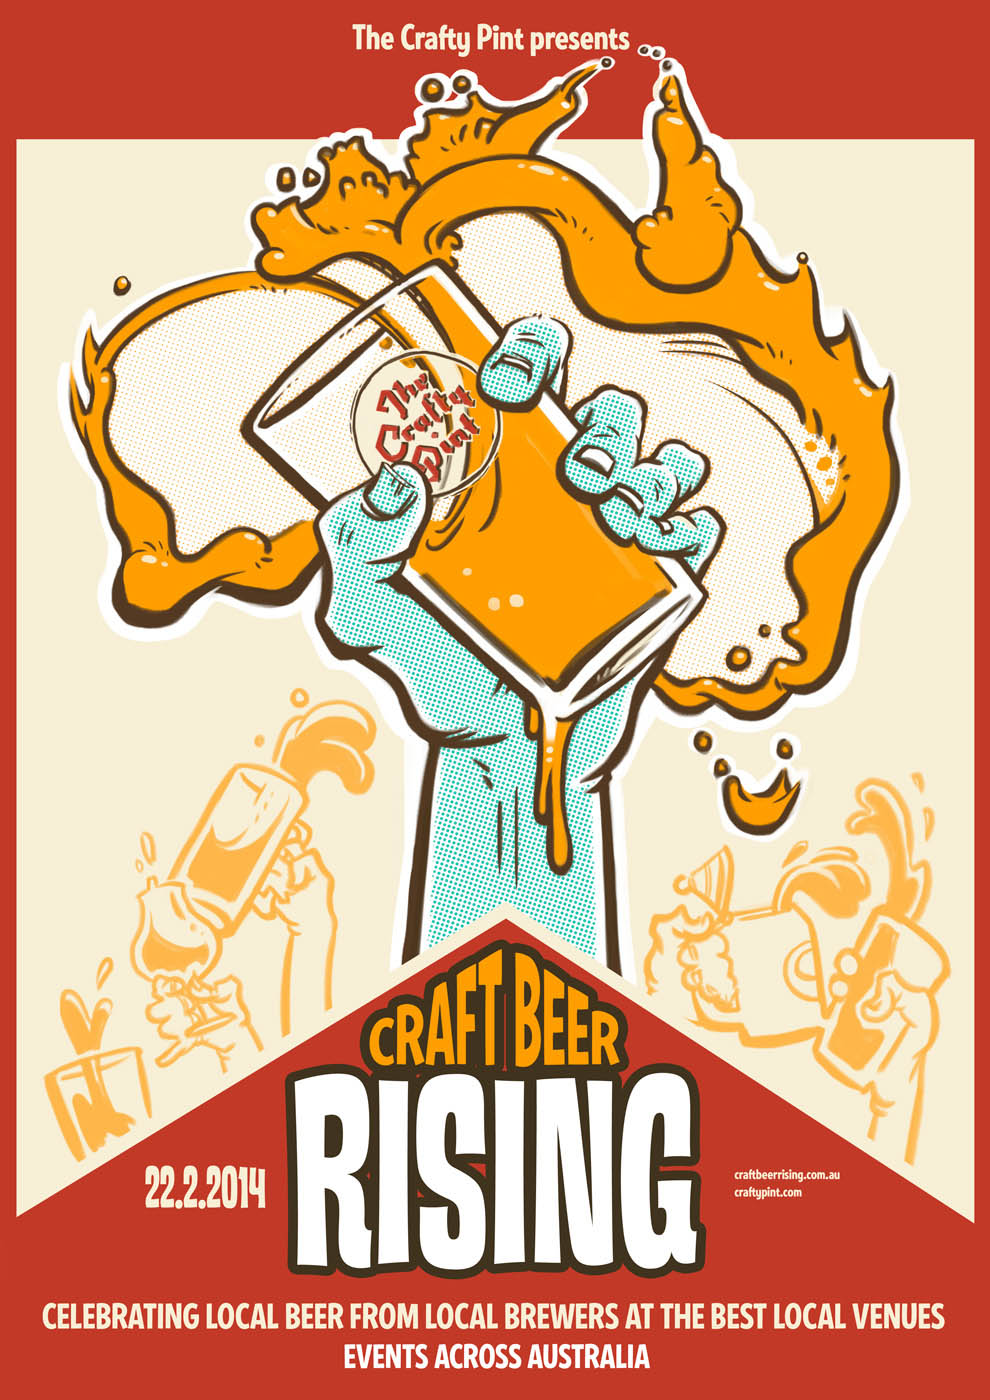 Craft Beer Rising The Crafty Pint